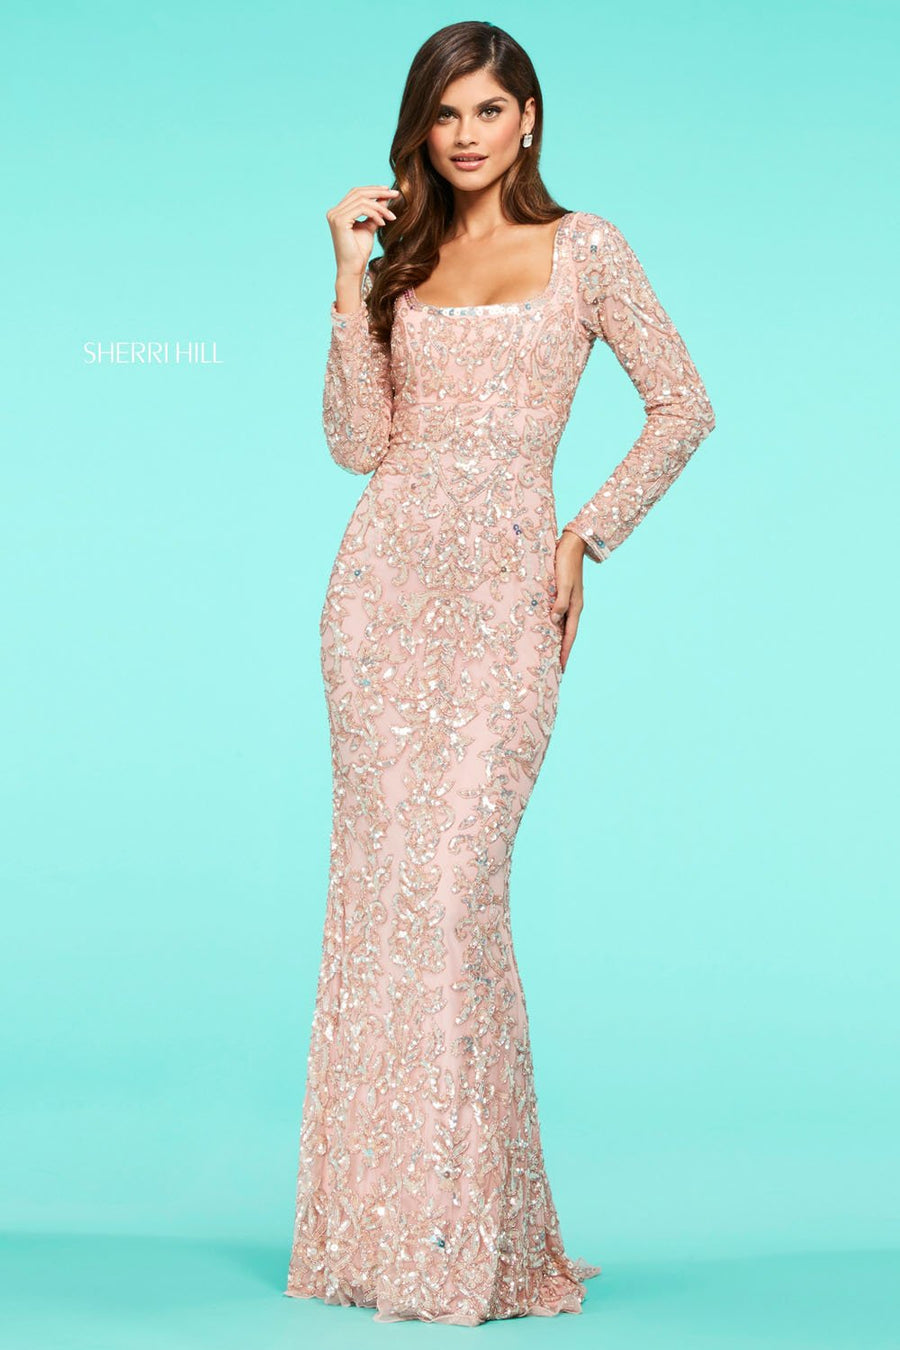 Sherri Hill 53451 prom dress images.  Sherri Hill 53451 is available in these colors: Nude Multi Ombre, Coral, Ivory, Gold, Light Blue, Blush, Navy, Black, Nude Ivory, Nude Yellow, Burgundy Blush, Yellow, Nude Aqua.